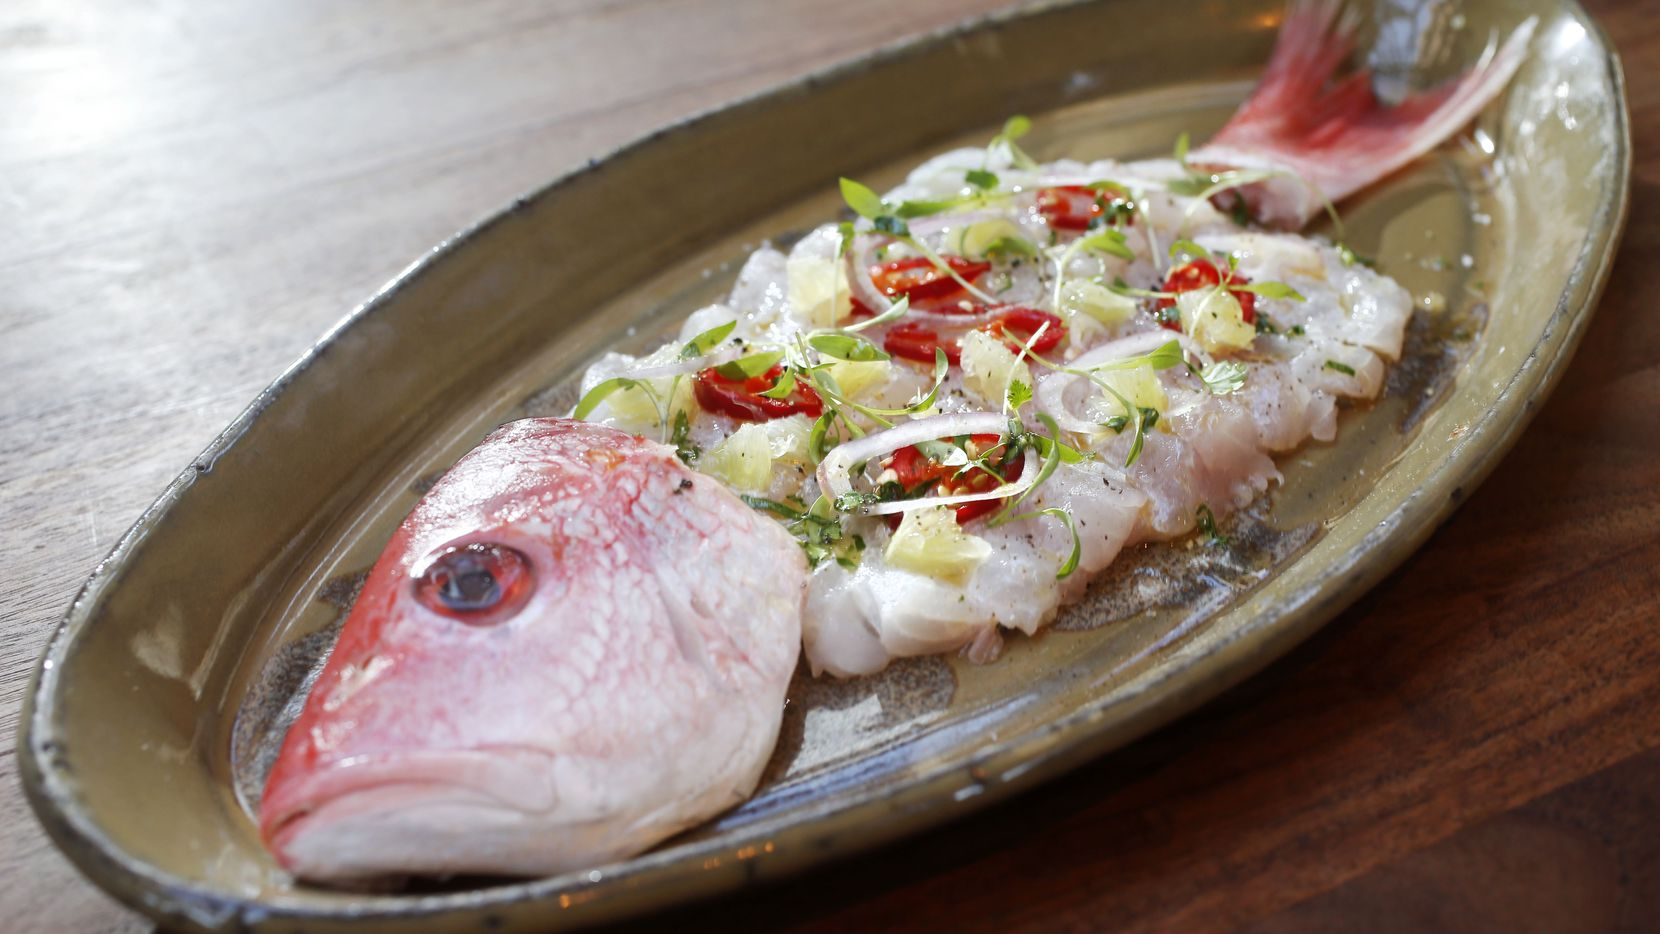 Whole fish, ceviche-style, was one of the secret menu items at Water Grill, we wrote in 2018. Water Grill closed in early 2020 in Uptown Dallas.